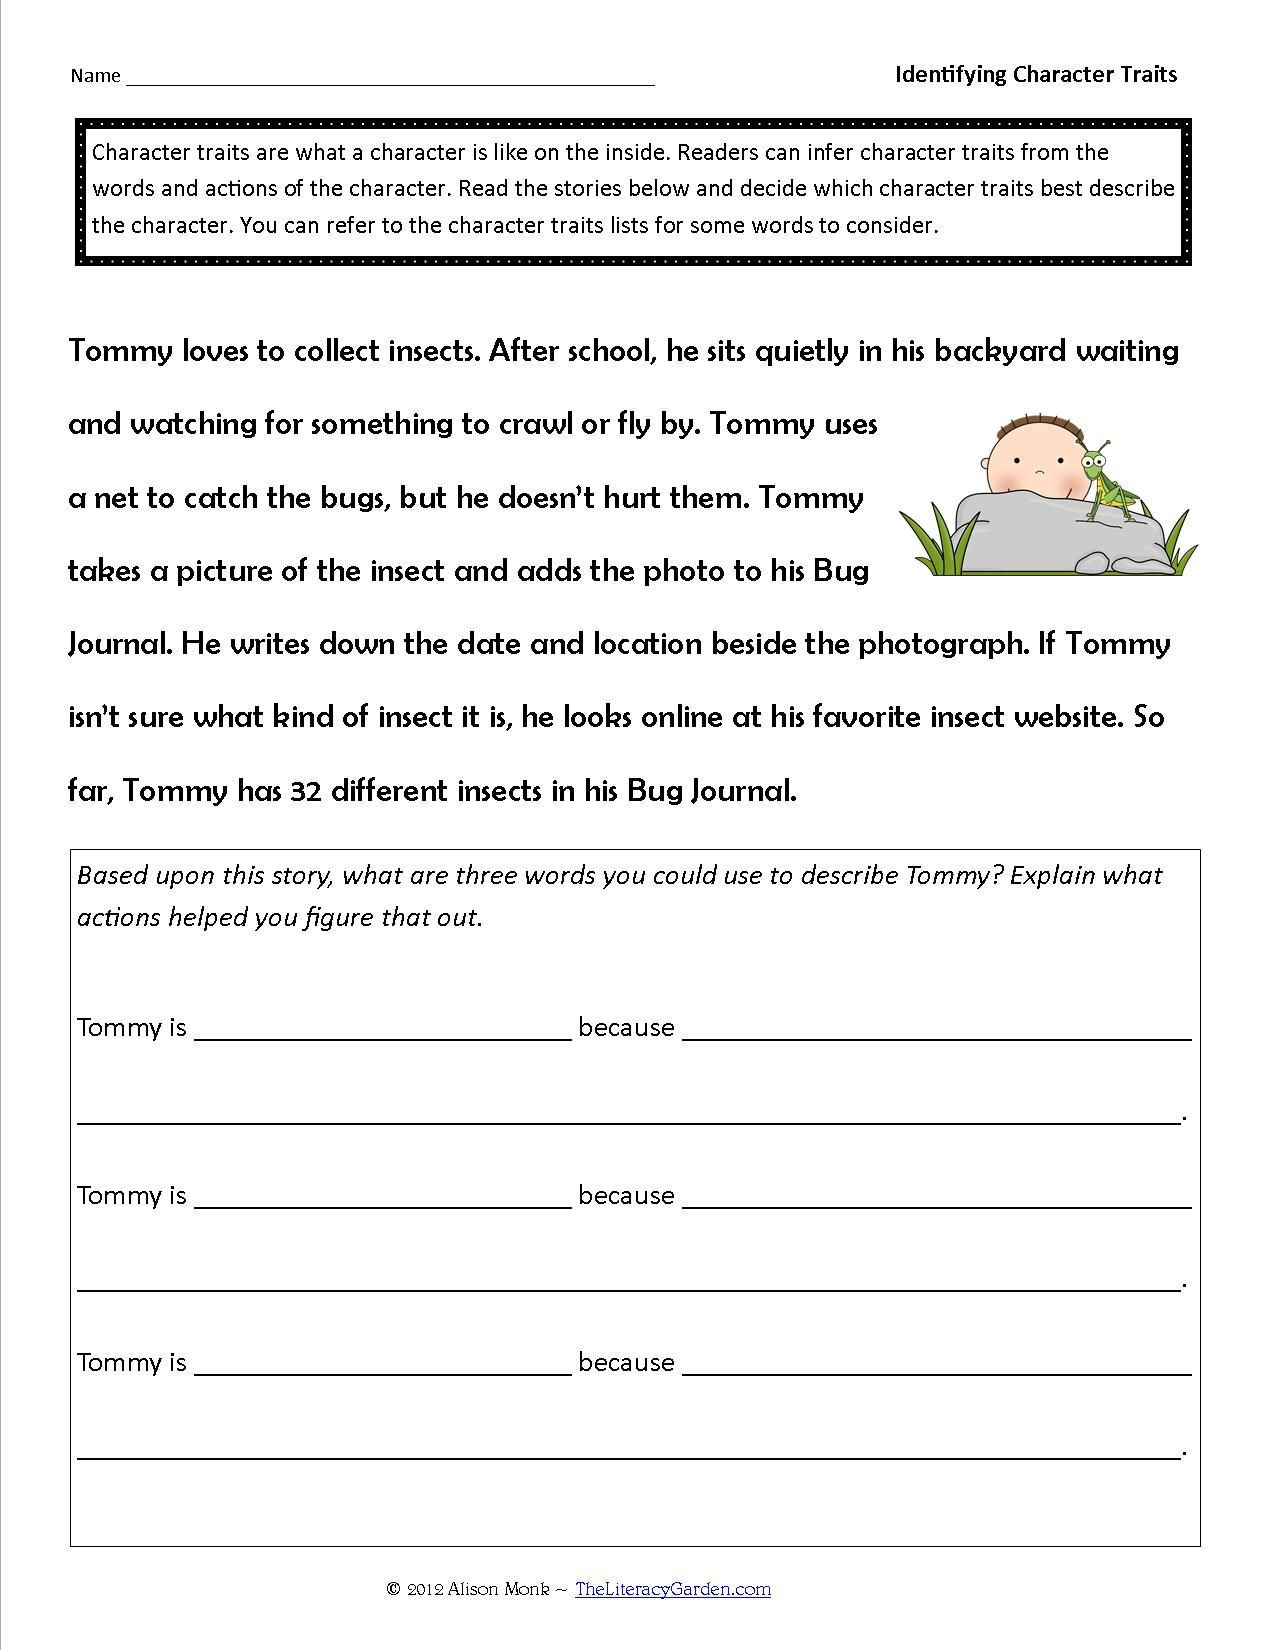 Character Traits Worksheet Pdf Identifying Character Traits In Literature